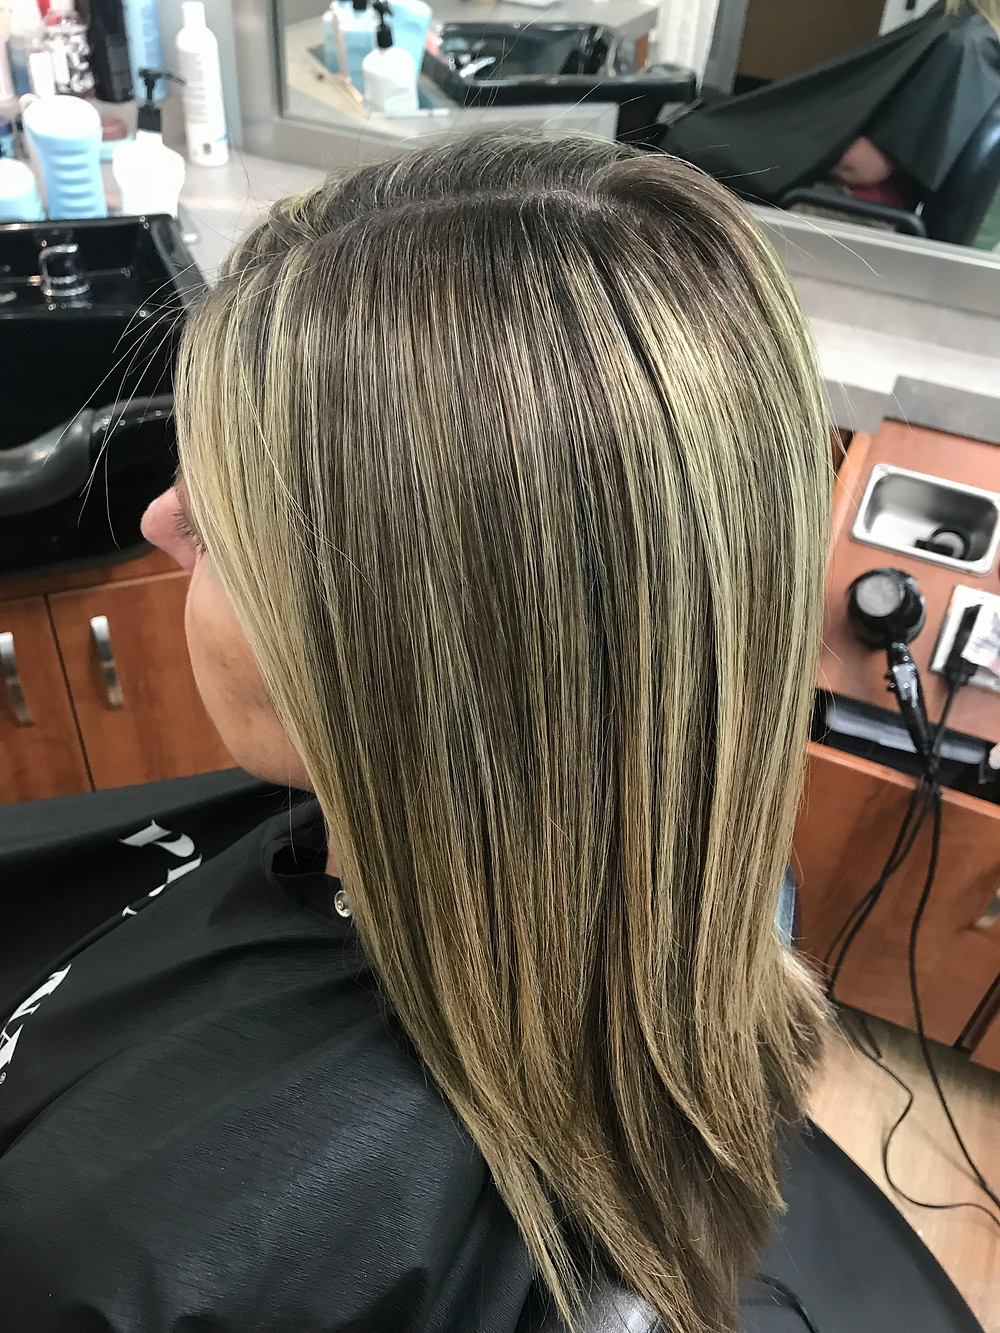 After a keratin service and lowlights to tone down her highlights